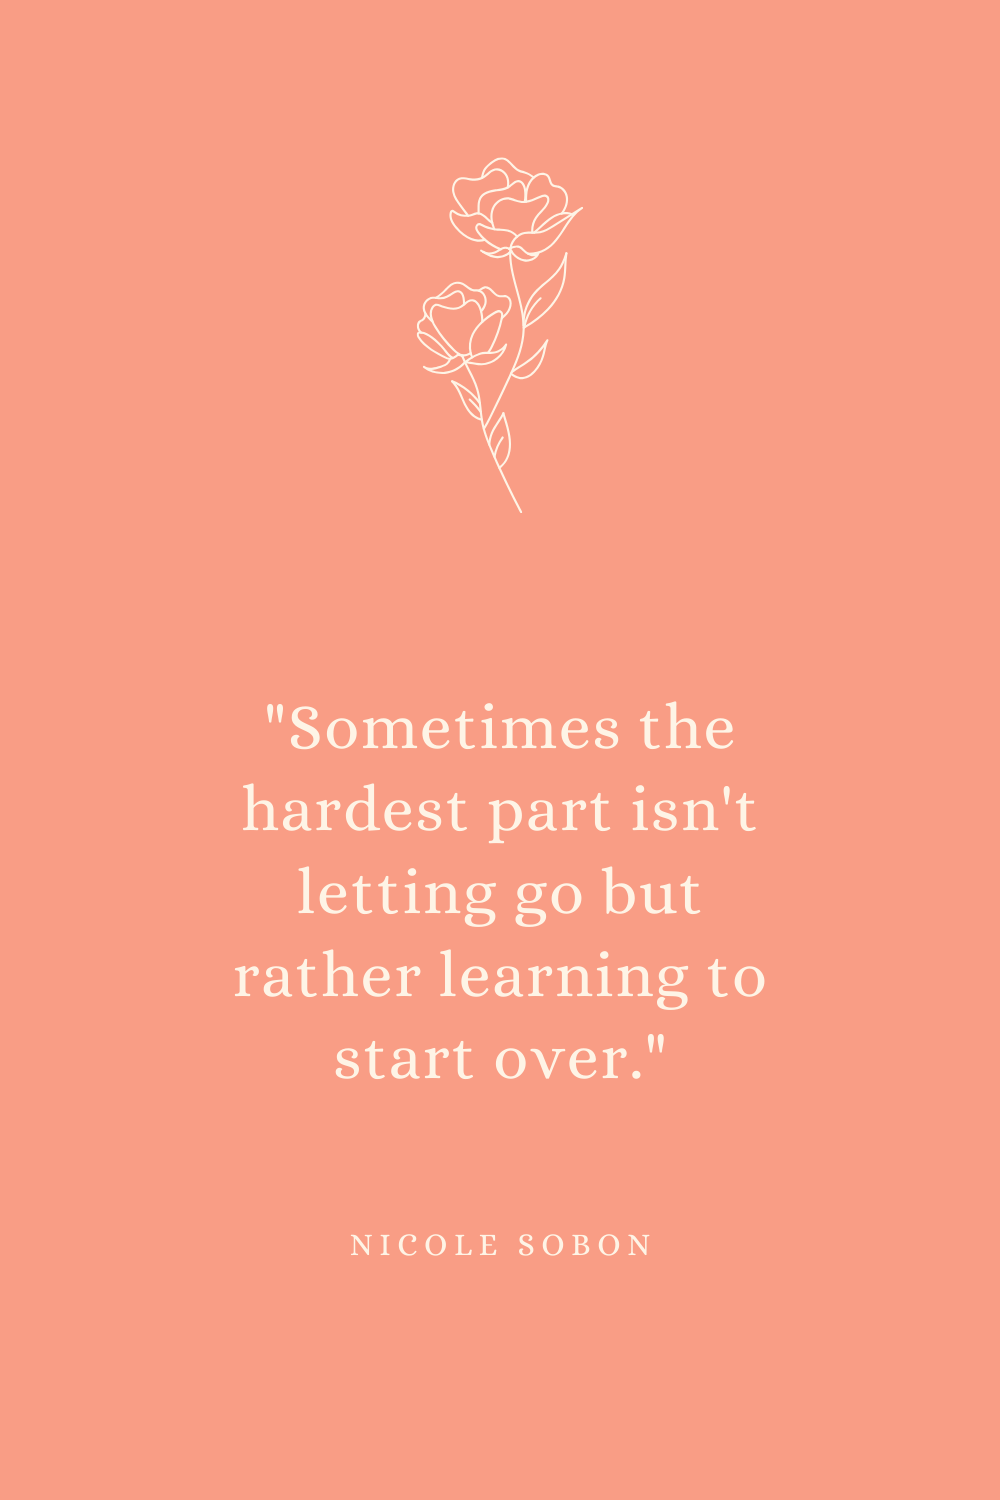 Inspirational Miss You Quotes about Moving On